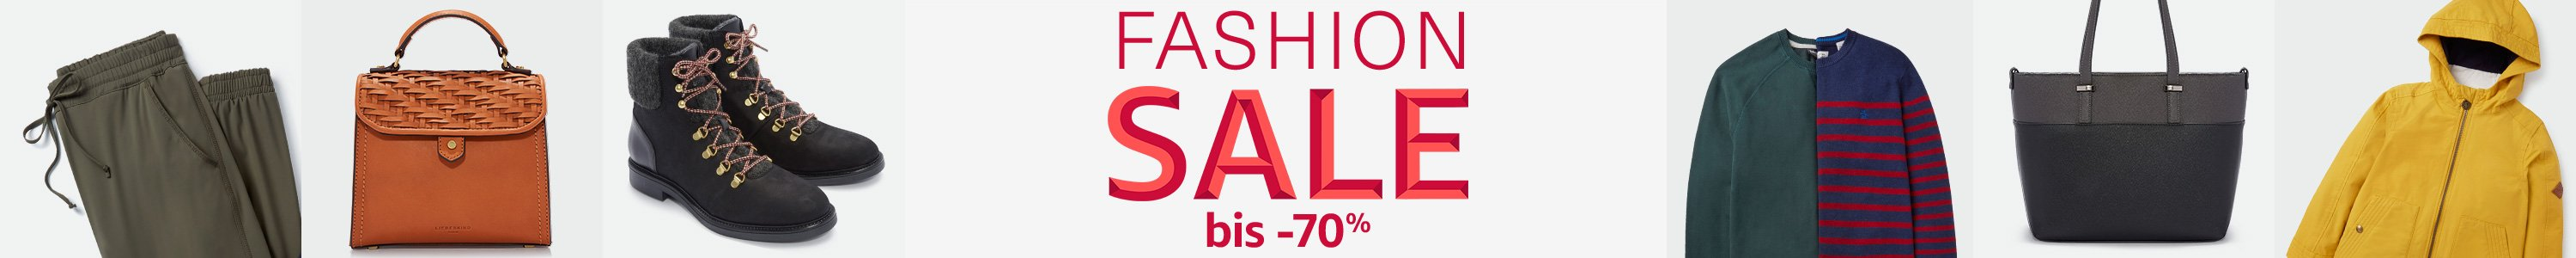 [Amazon.de] Fashion Sale bis zu -70%